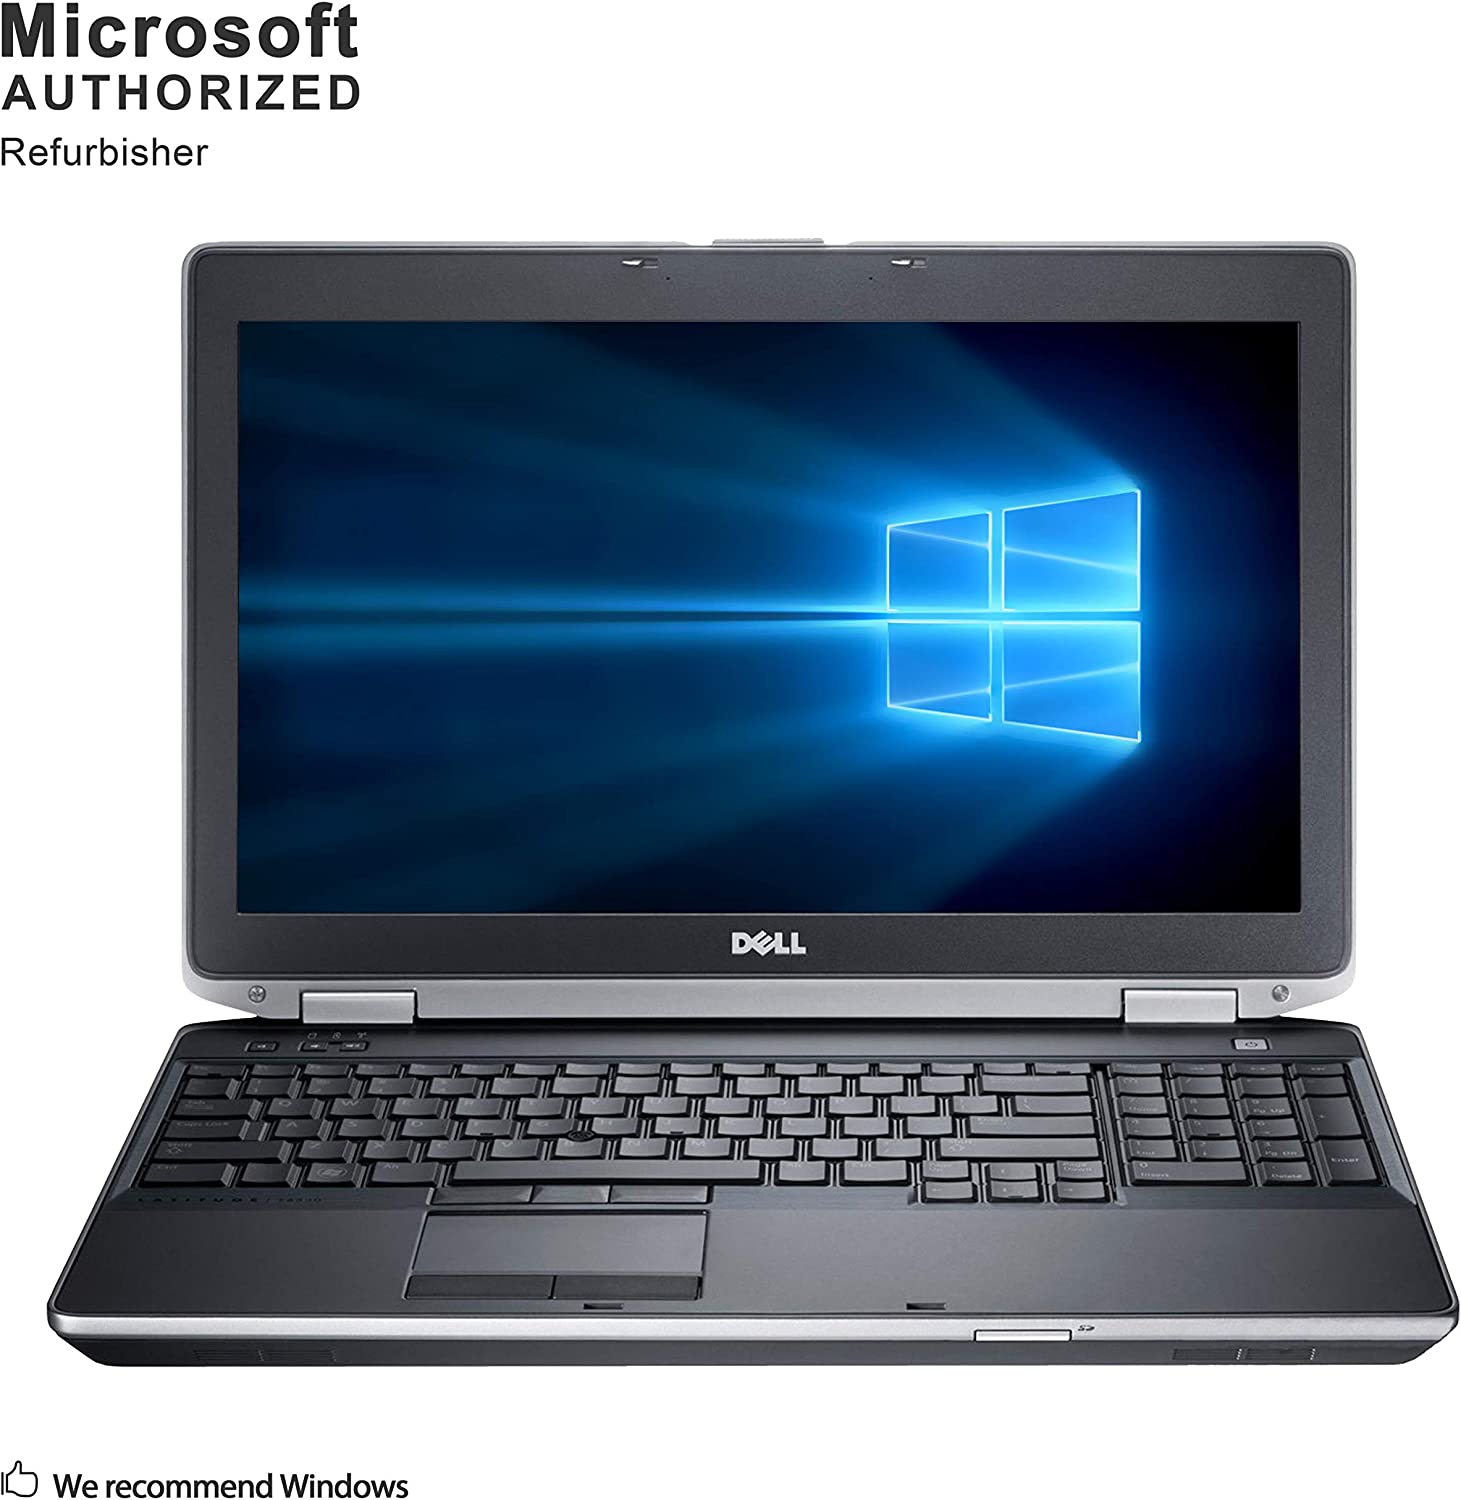 Dell Latitude E6530 15.6 Inch Business Laptop, Intel Core i5-3210M up to 3.1GHz, 8G DDR3, 320G, DVD, VGA, HDMI, WiFi, Win 10 Pro 64 Bit Multi-Language Support English/French/Spanish(Renewed)